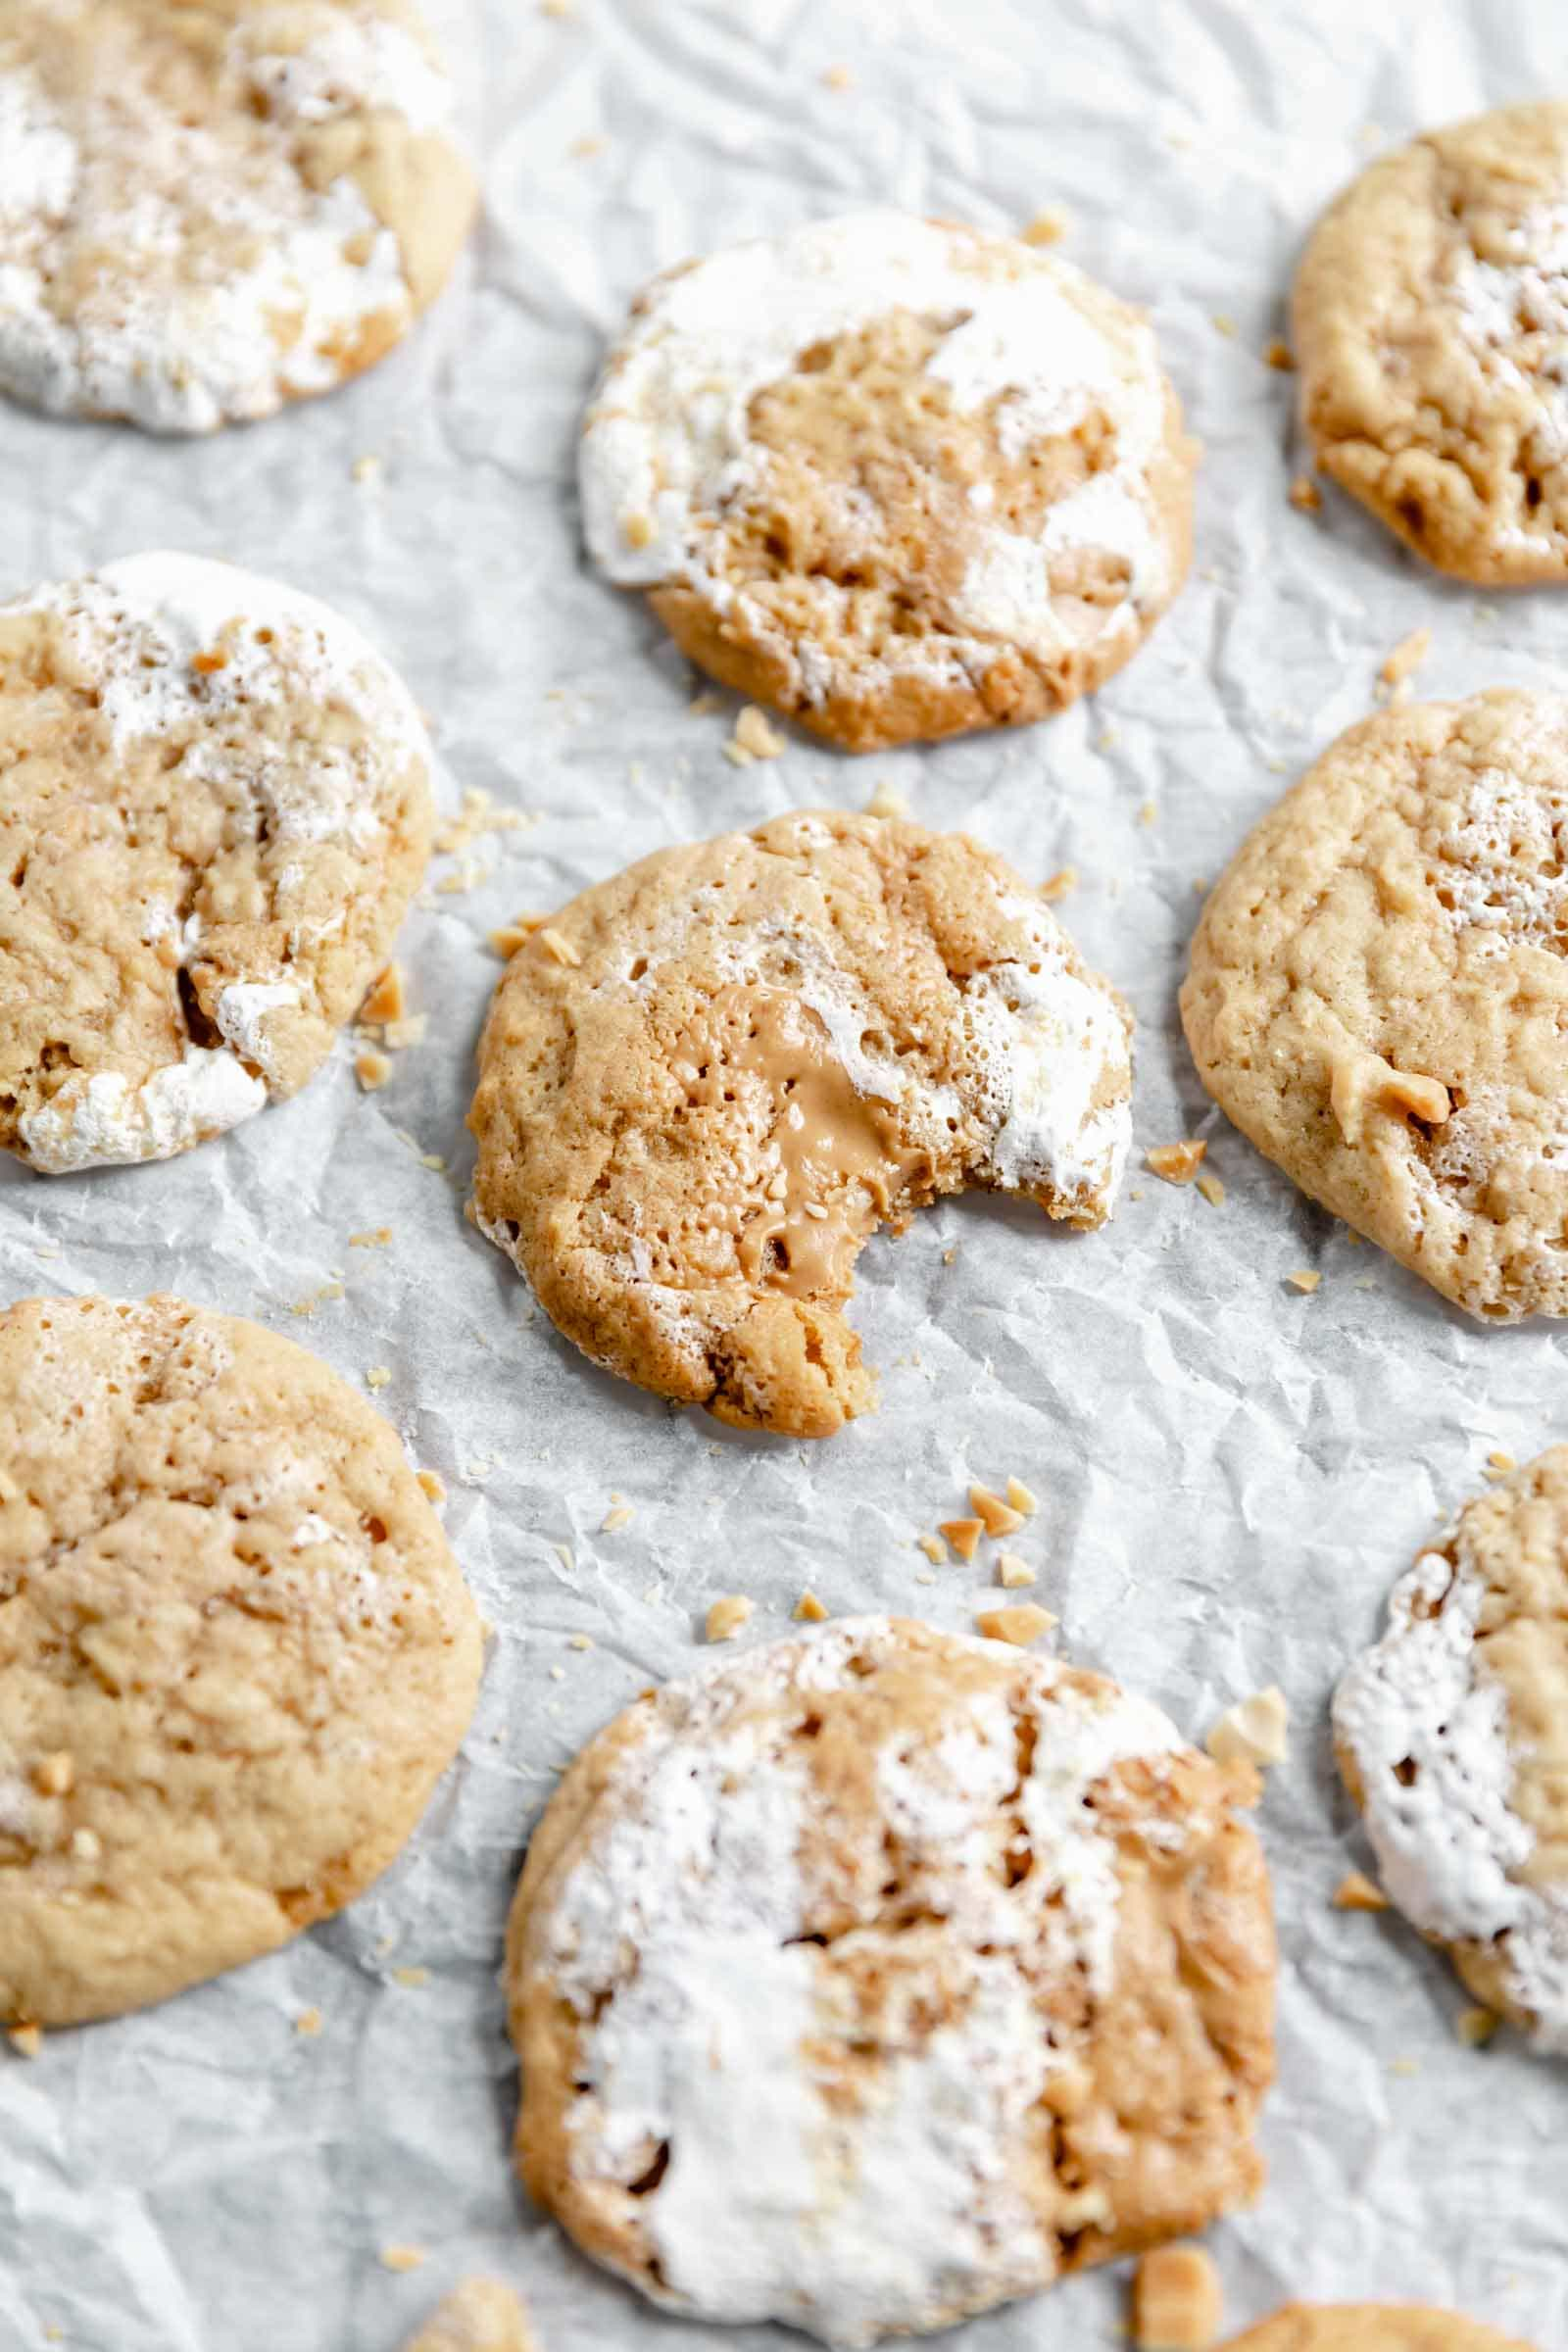 peanut butter and fluff cookies with a bite taken out